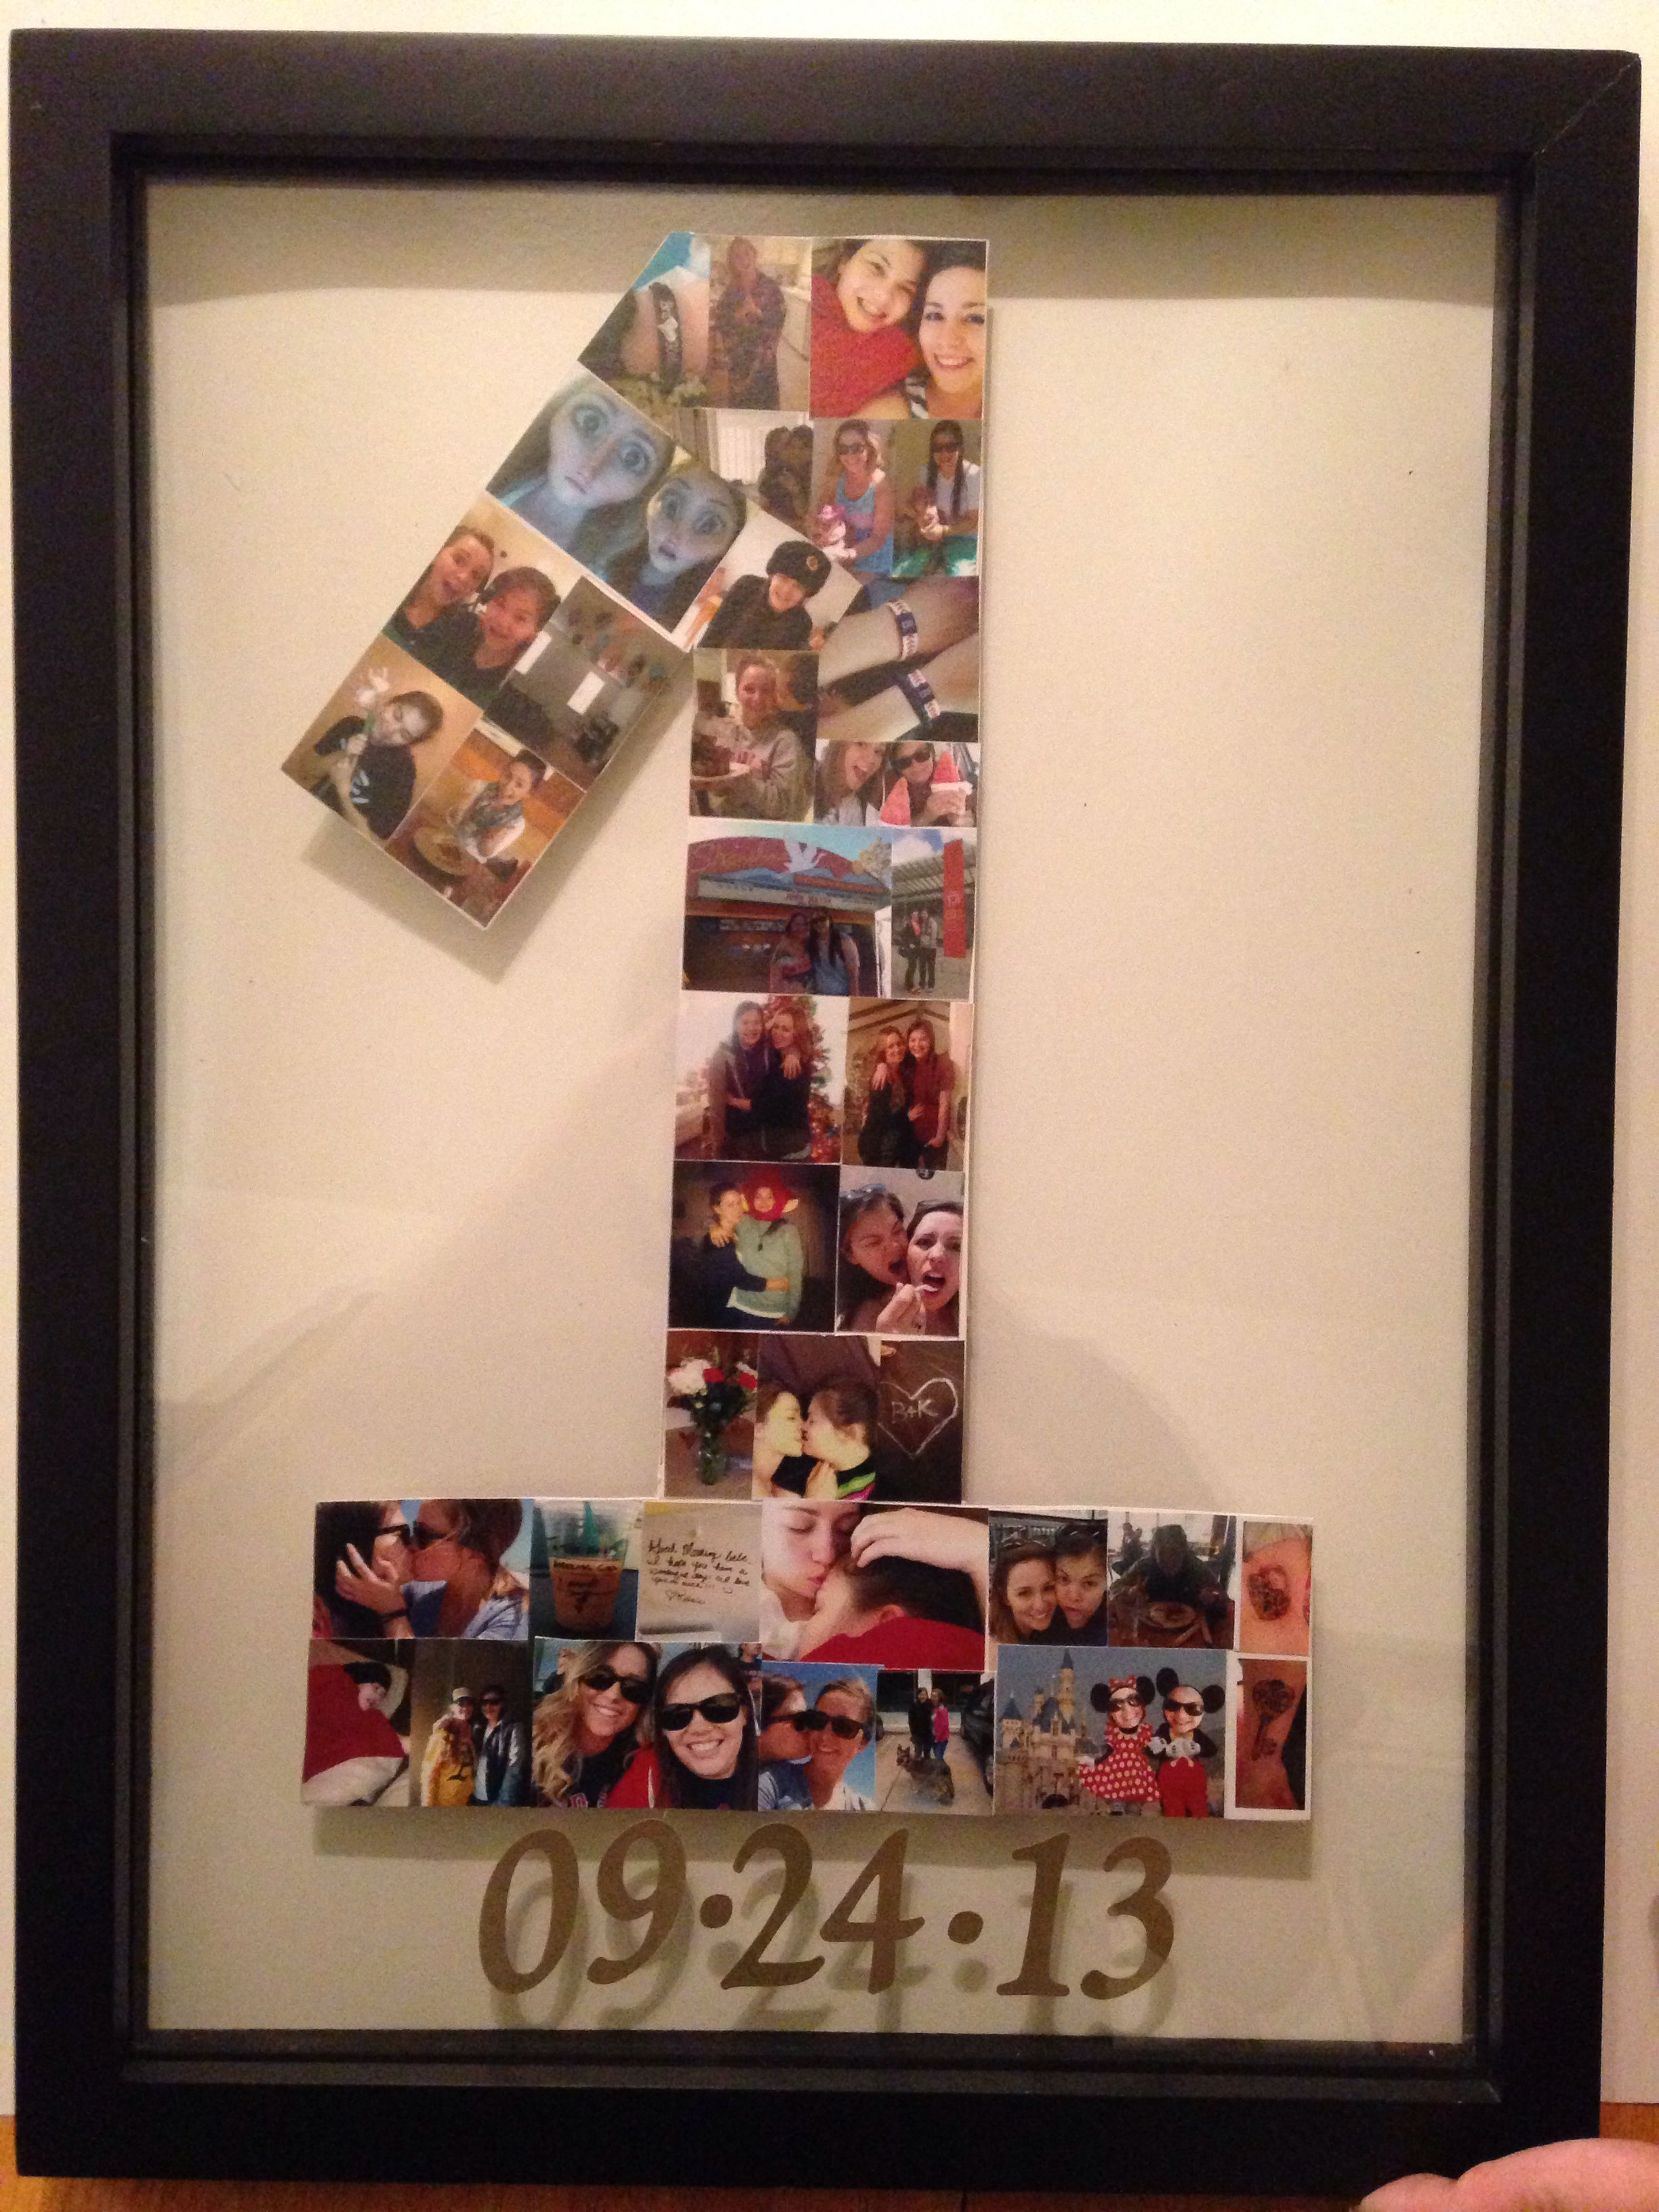 Cool 1 year anniversary ideas